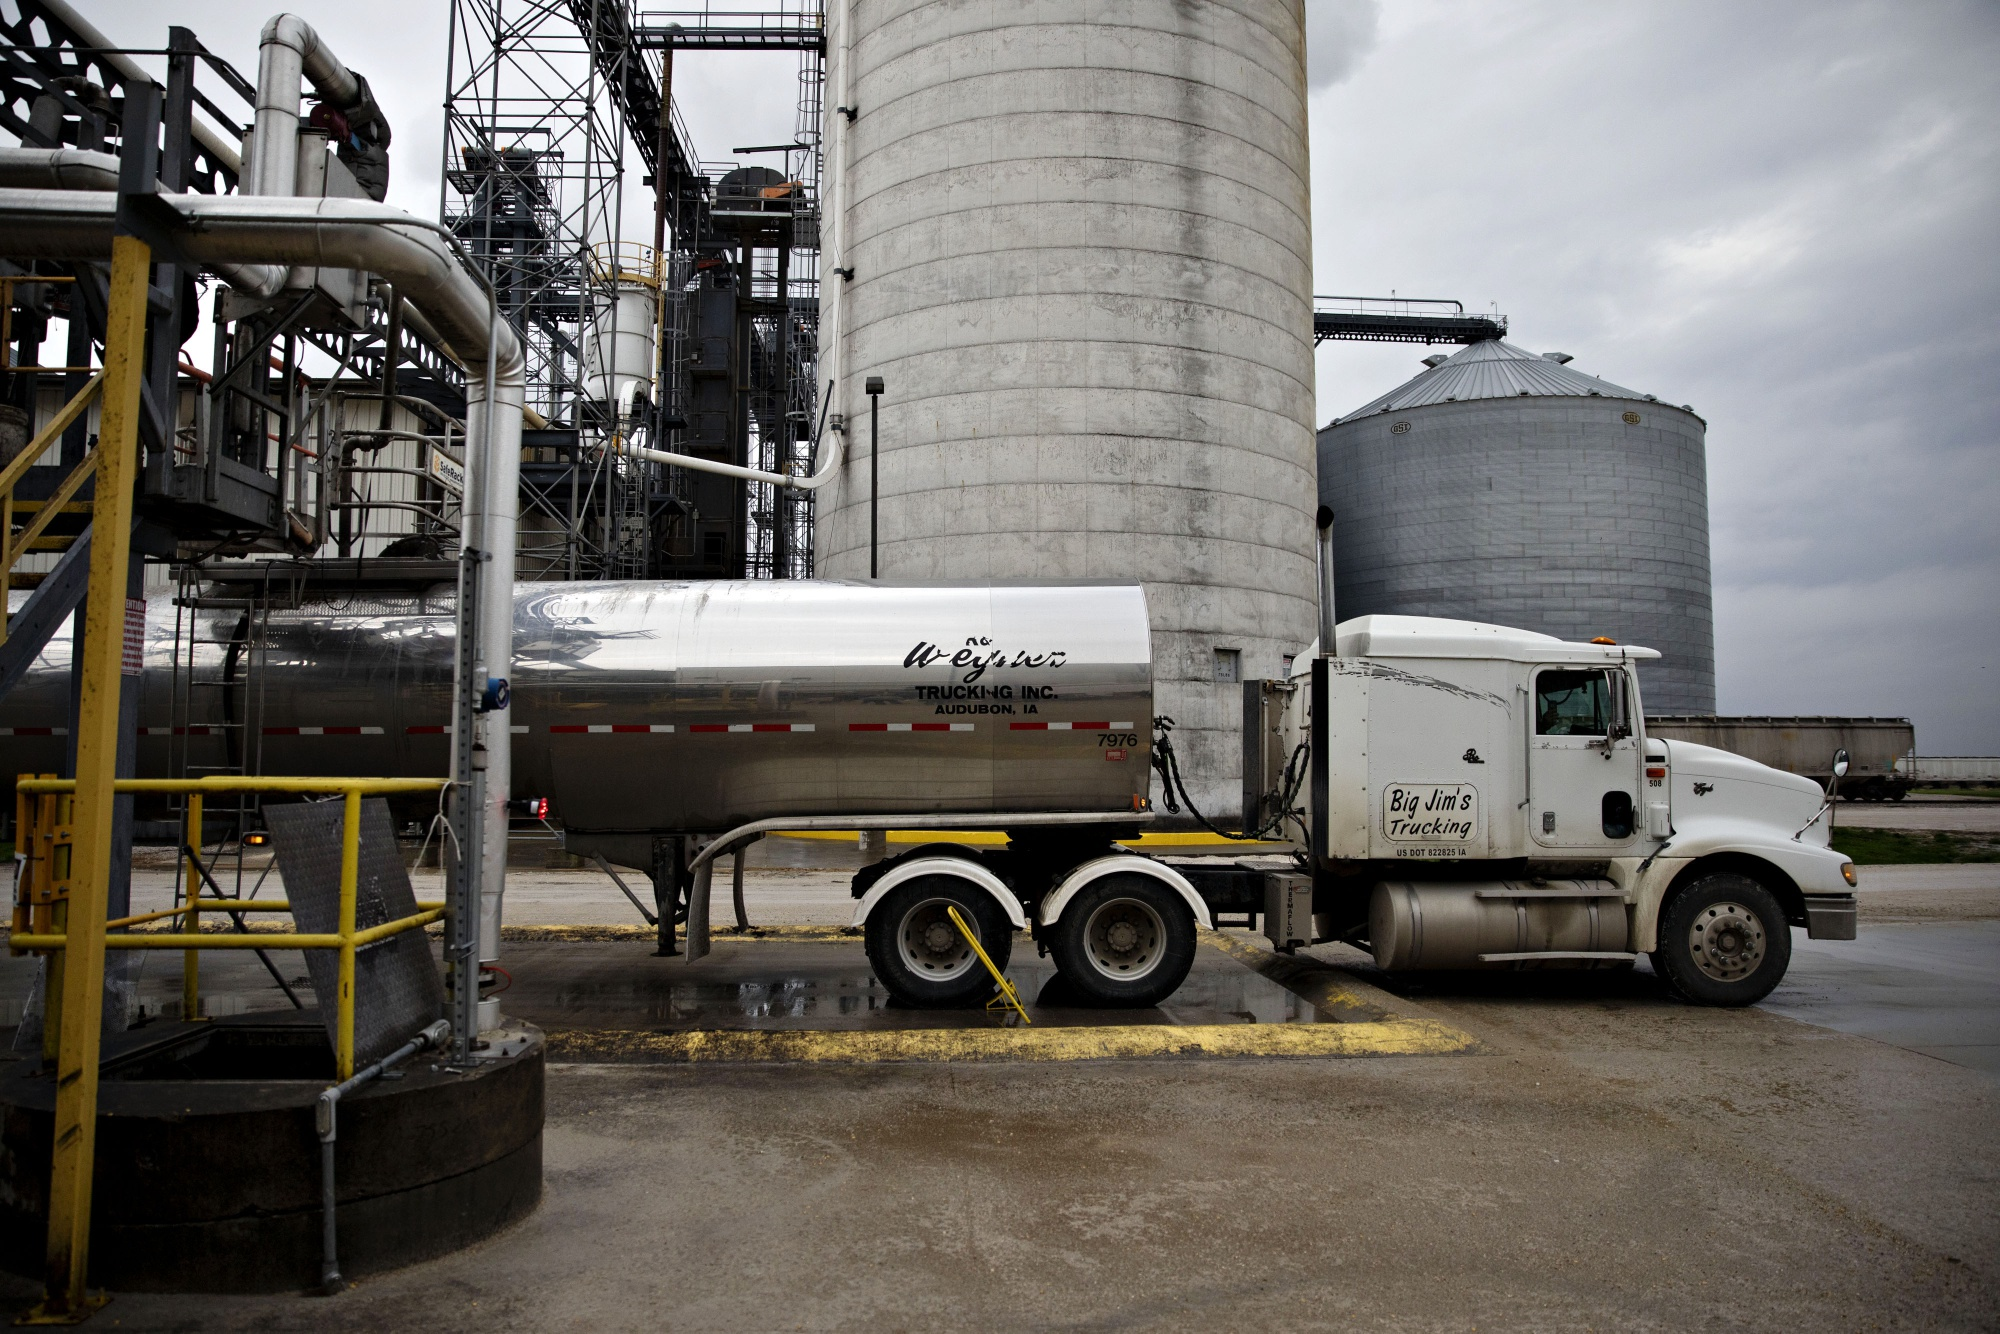 A tanker truck sits outside anethanol biorefinery in Gowrie, Iowa.